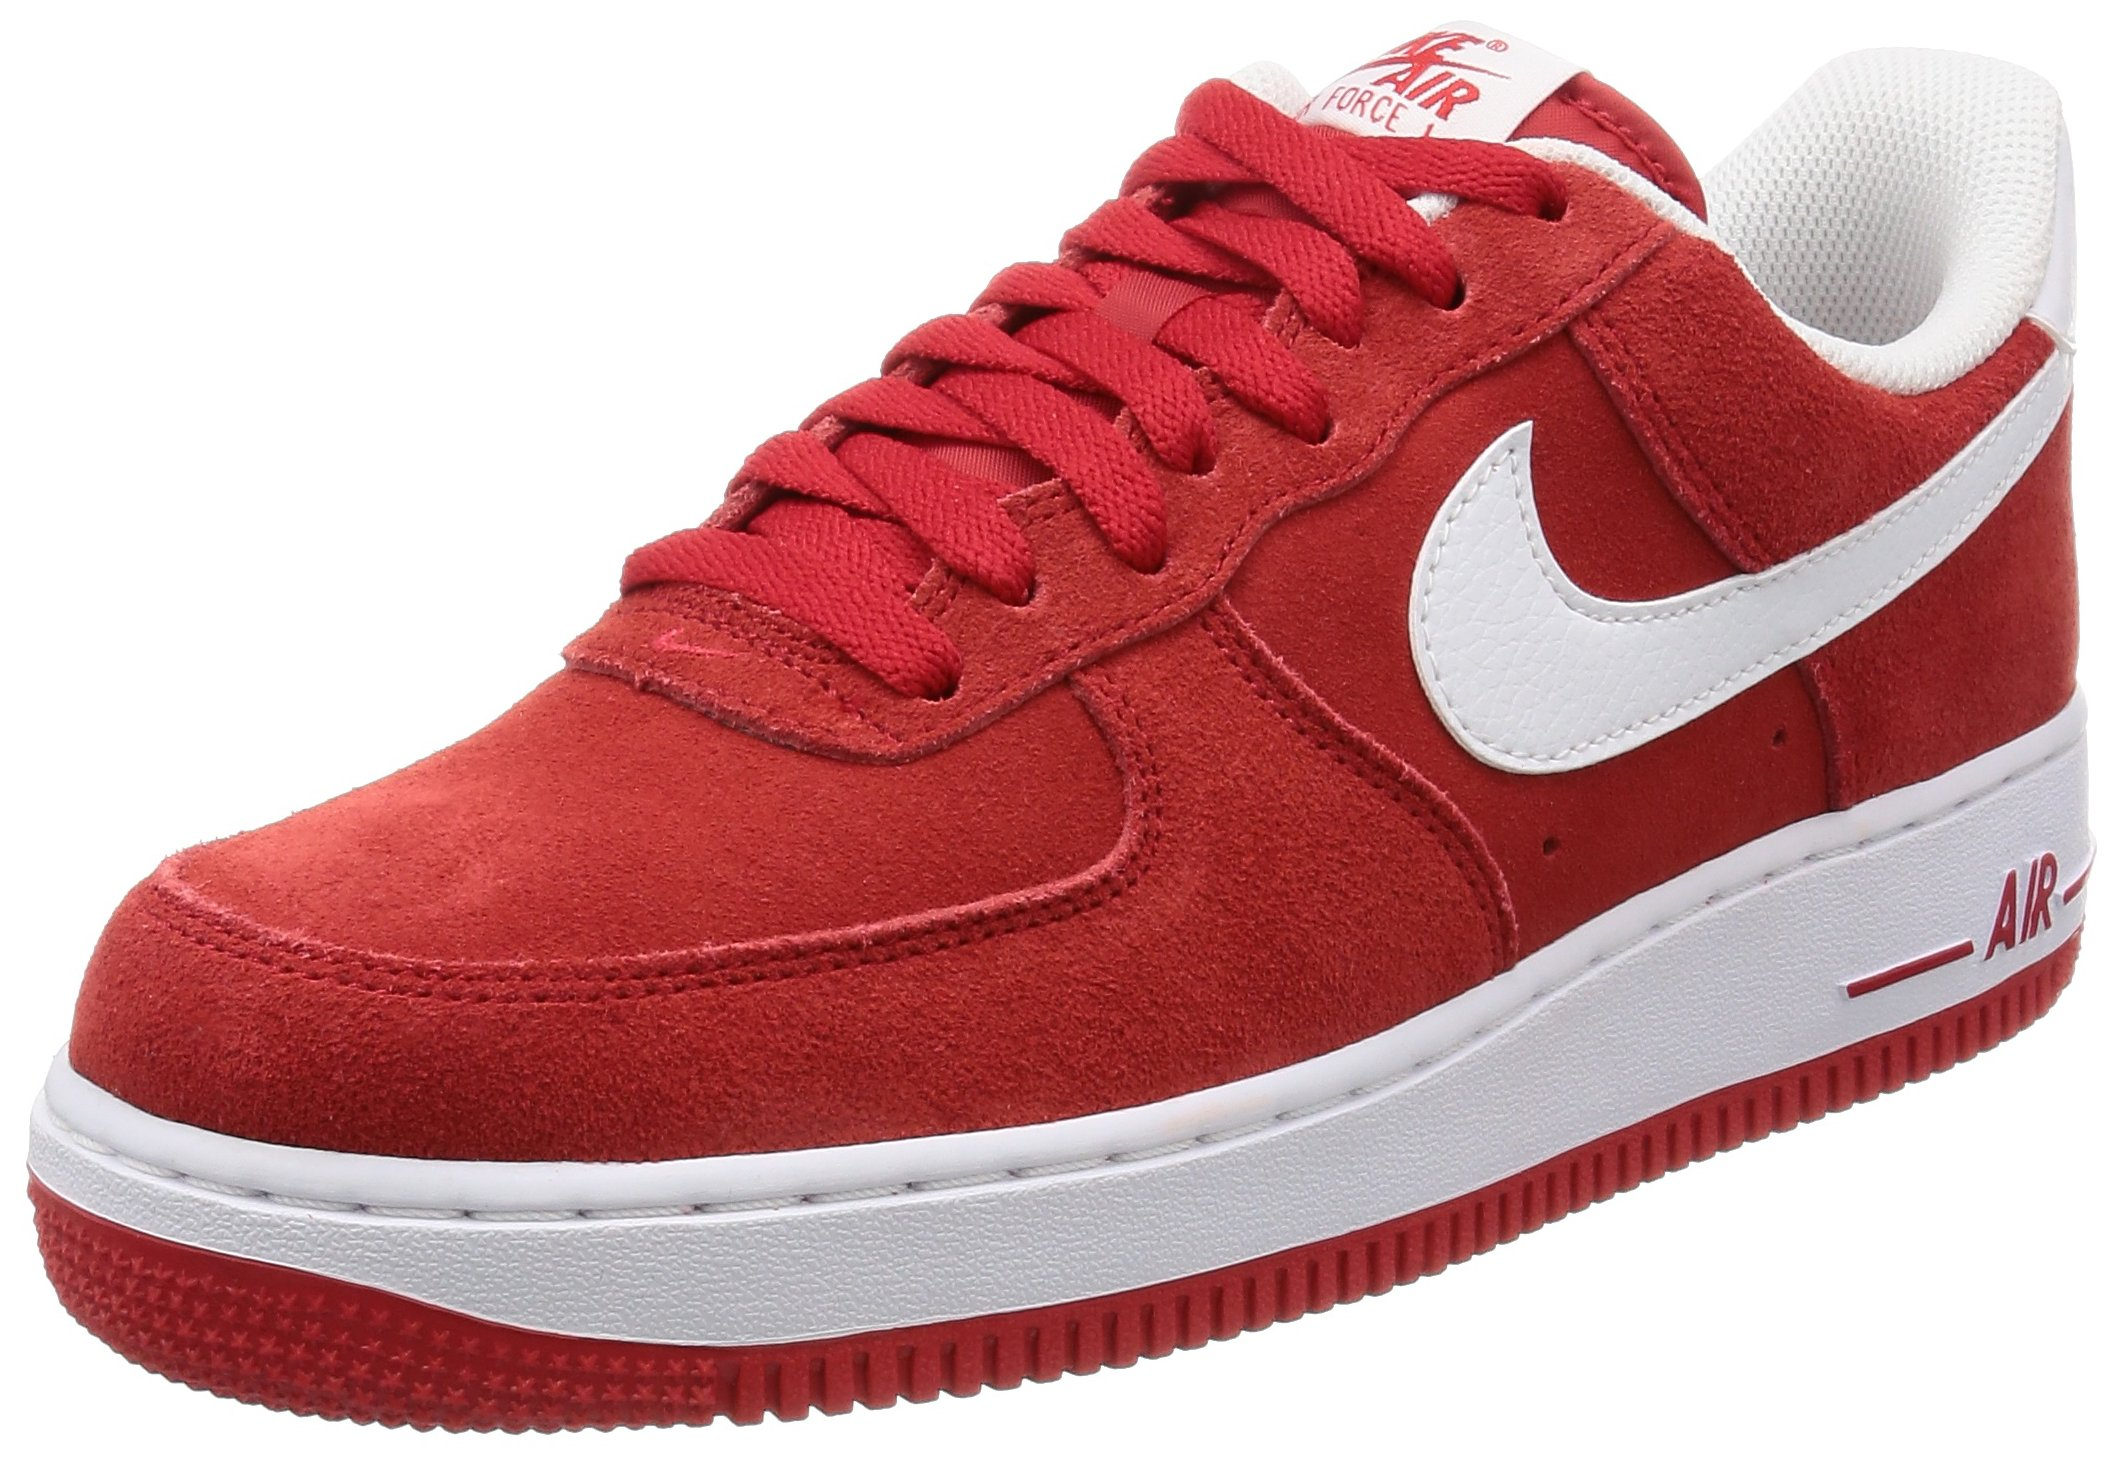 watch 7161a 42bce NIKE Mens Air Force 1 Low 07 Basketball Shoes University RedWhite  315122-612